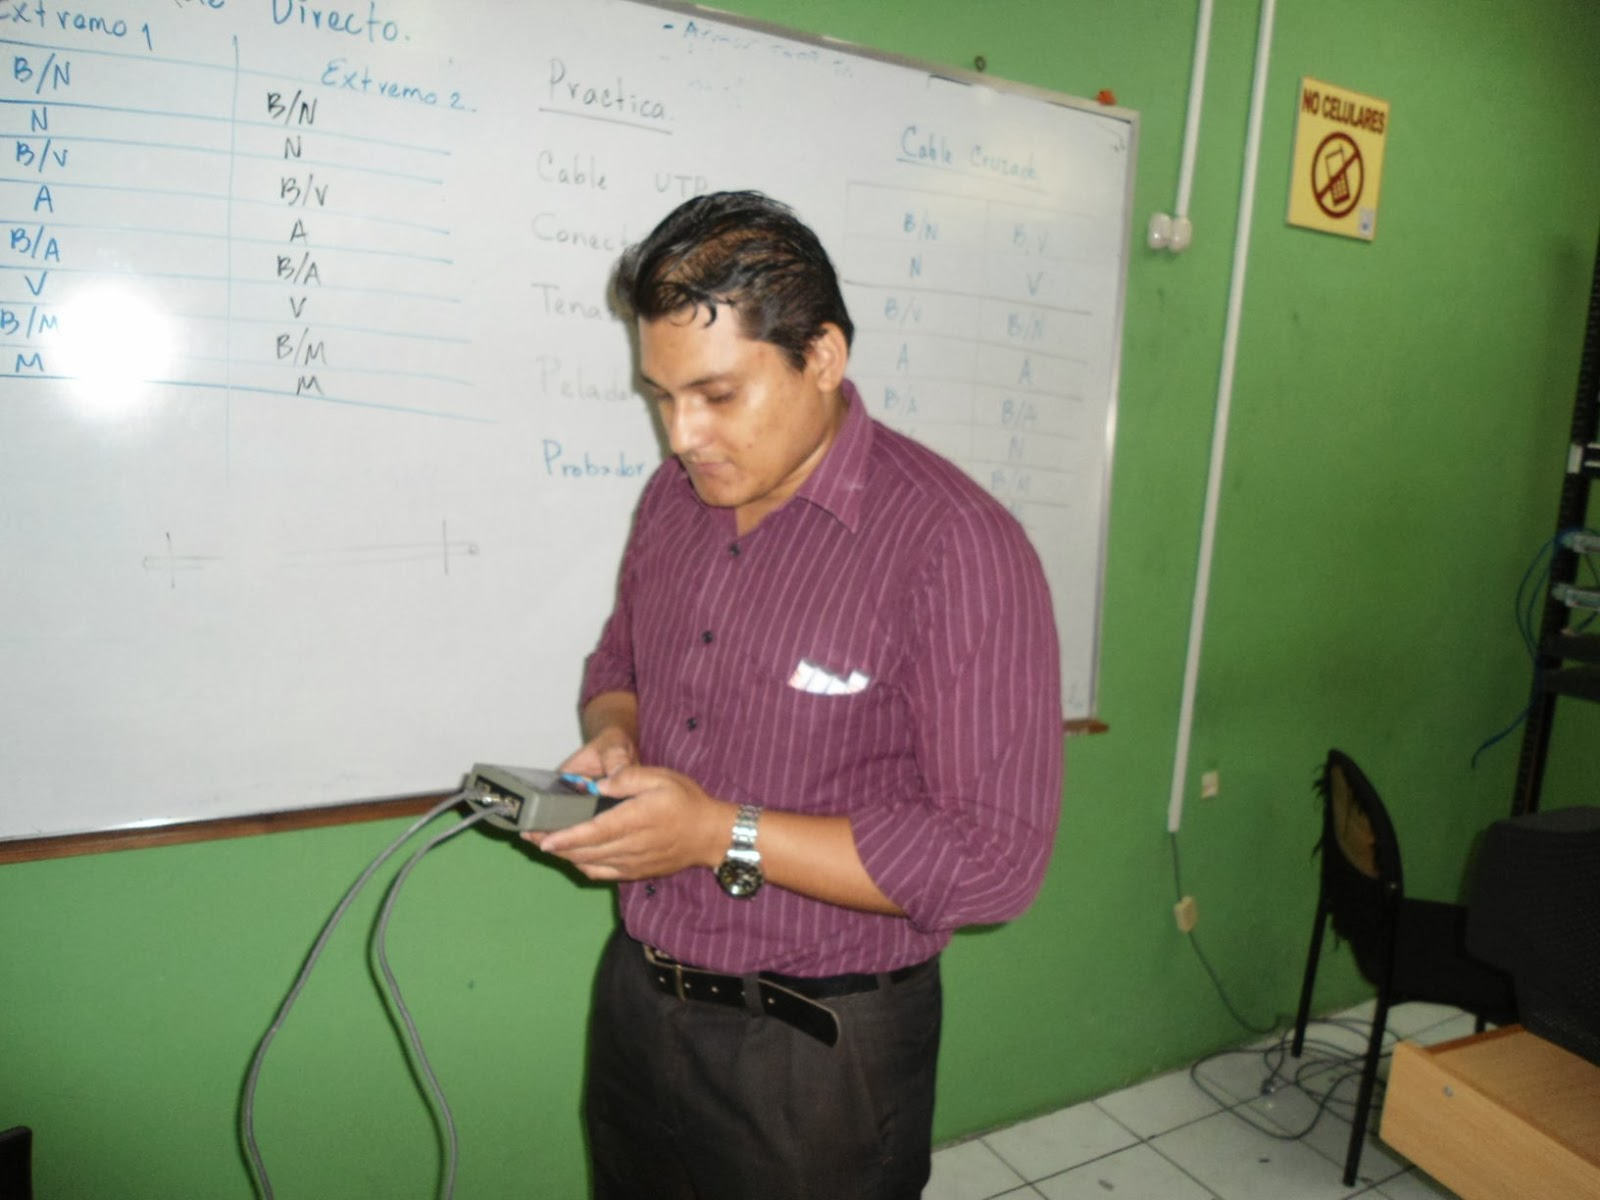 pedro-villalta-pavillalta-instructor-cisco-ccna